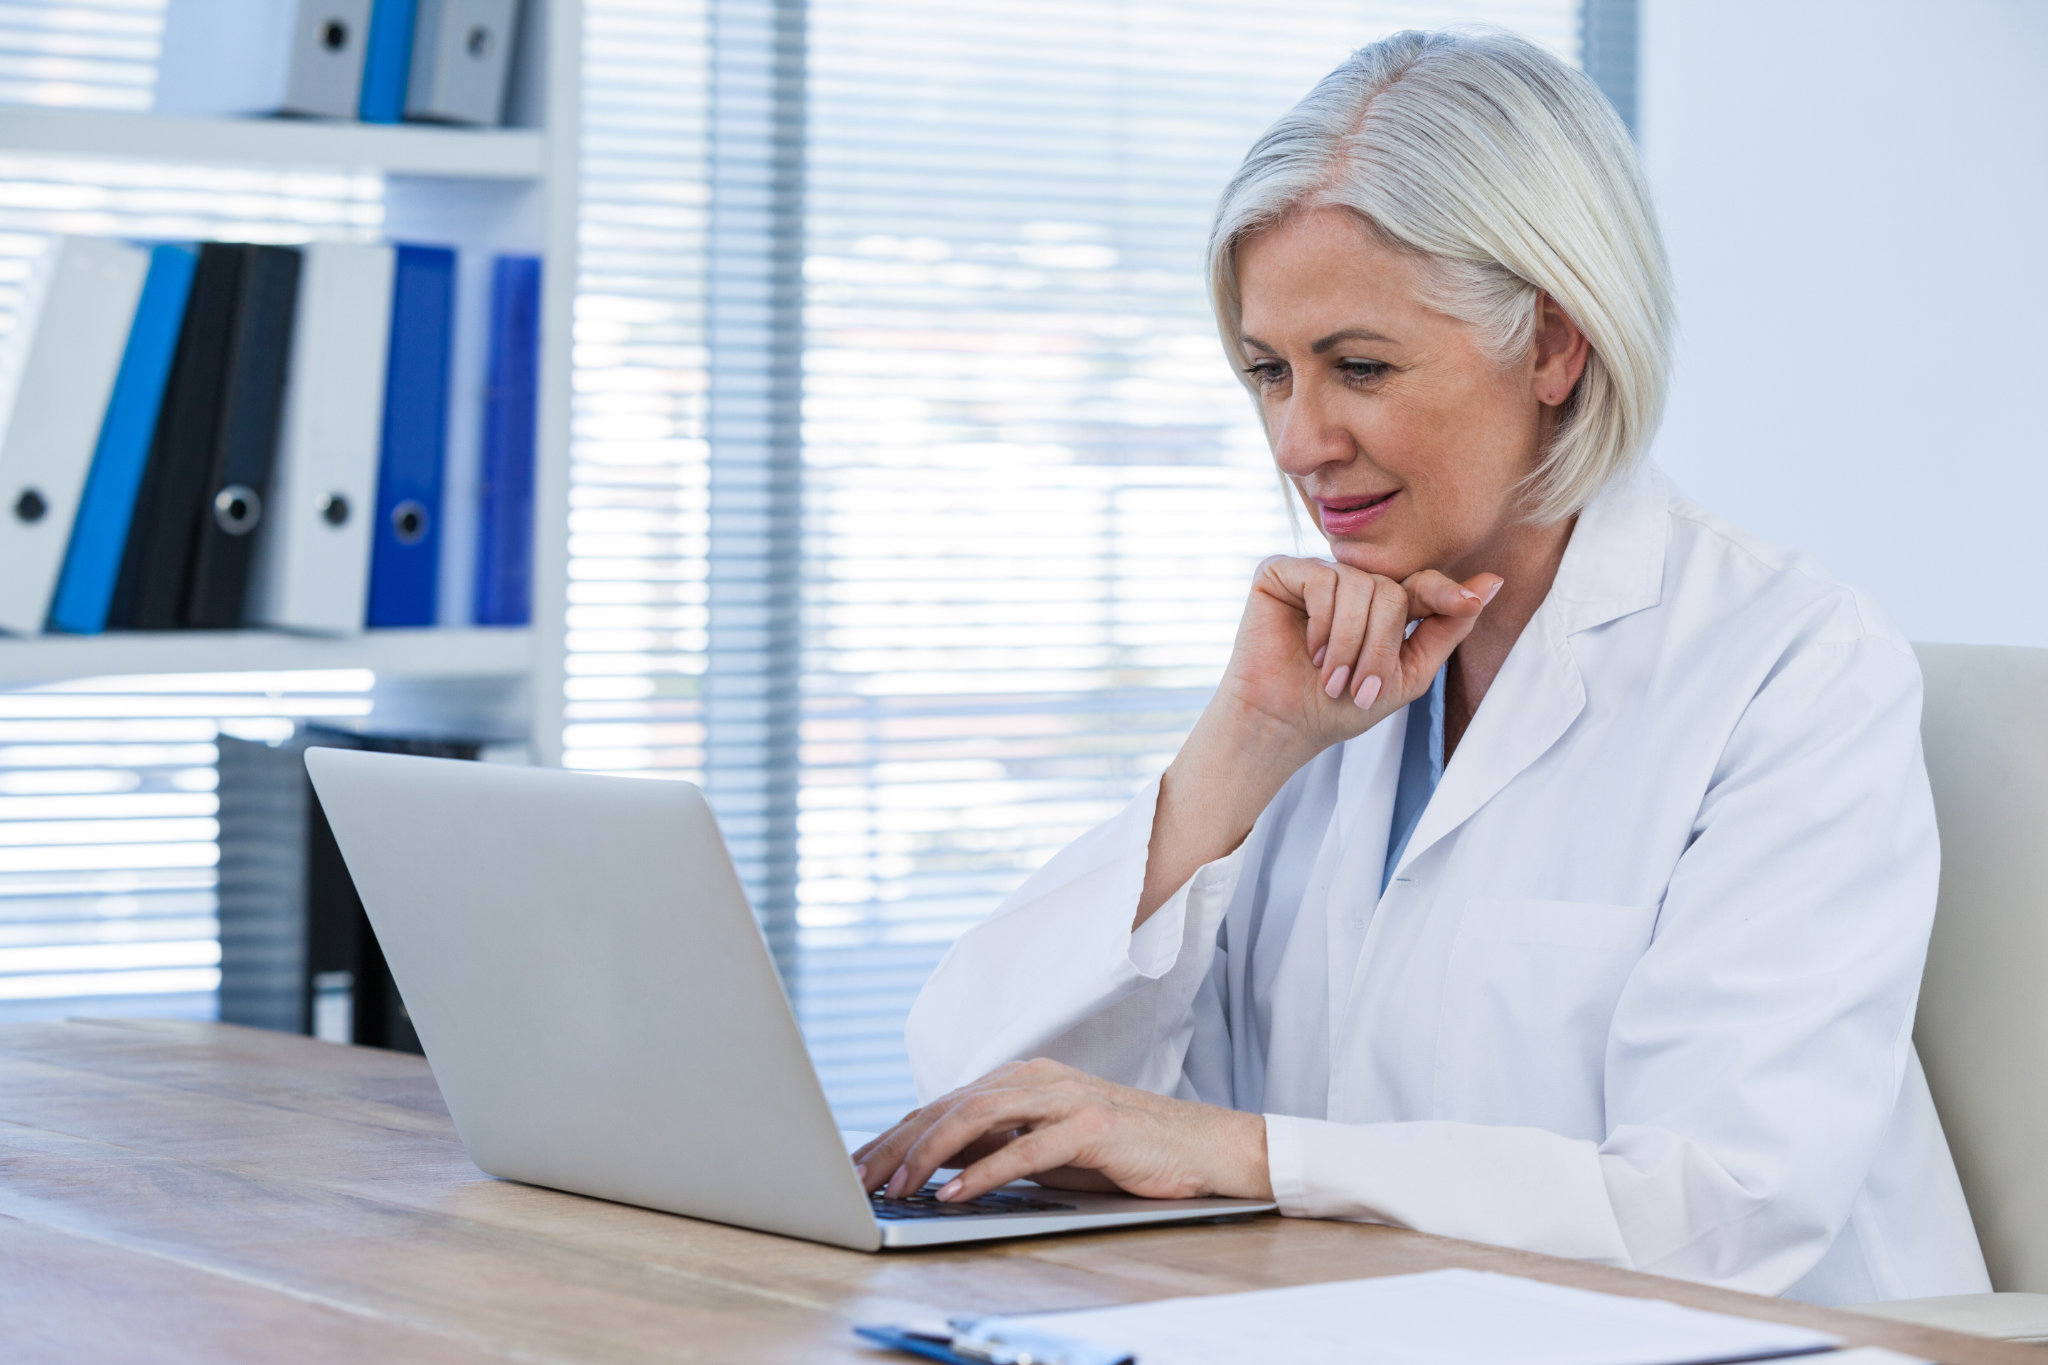 Woman Doctor at desk